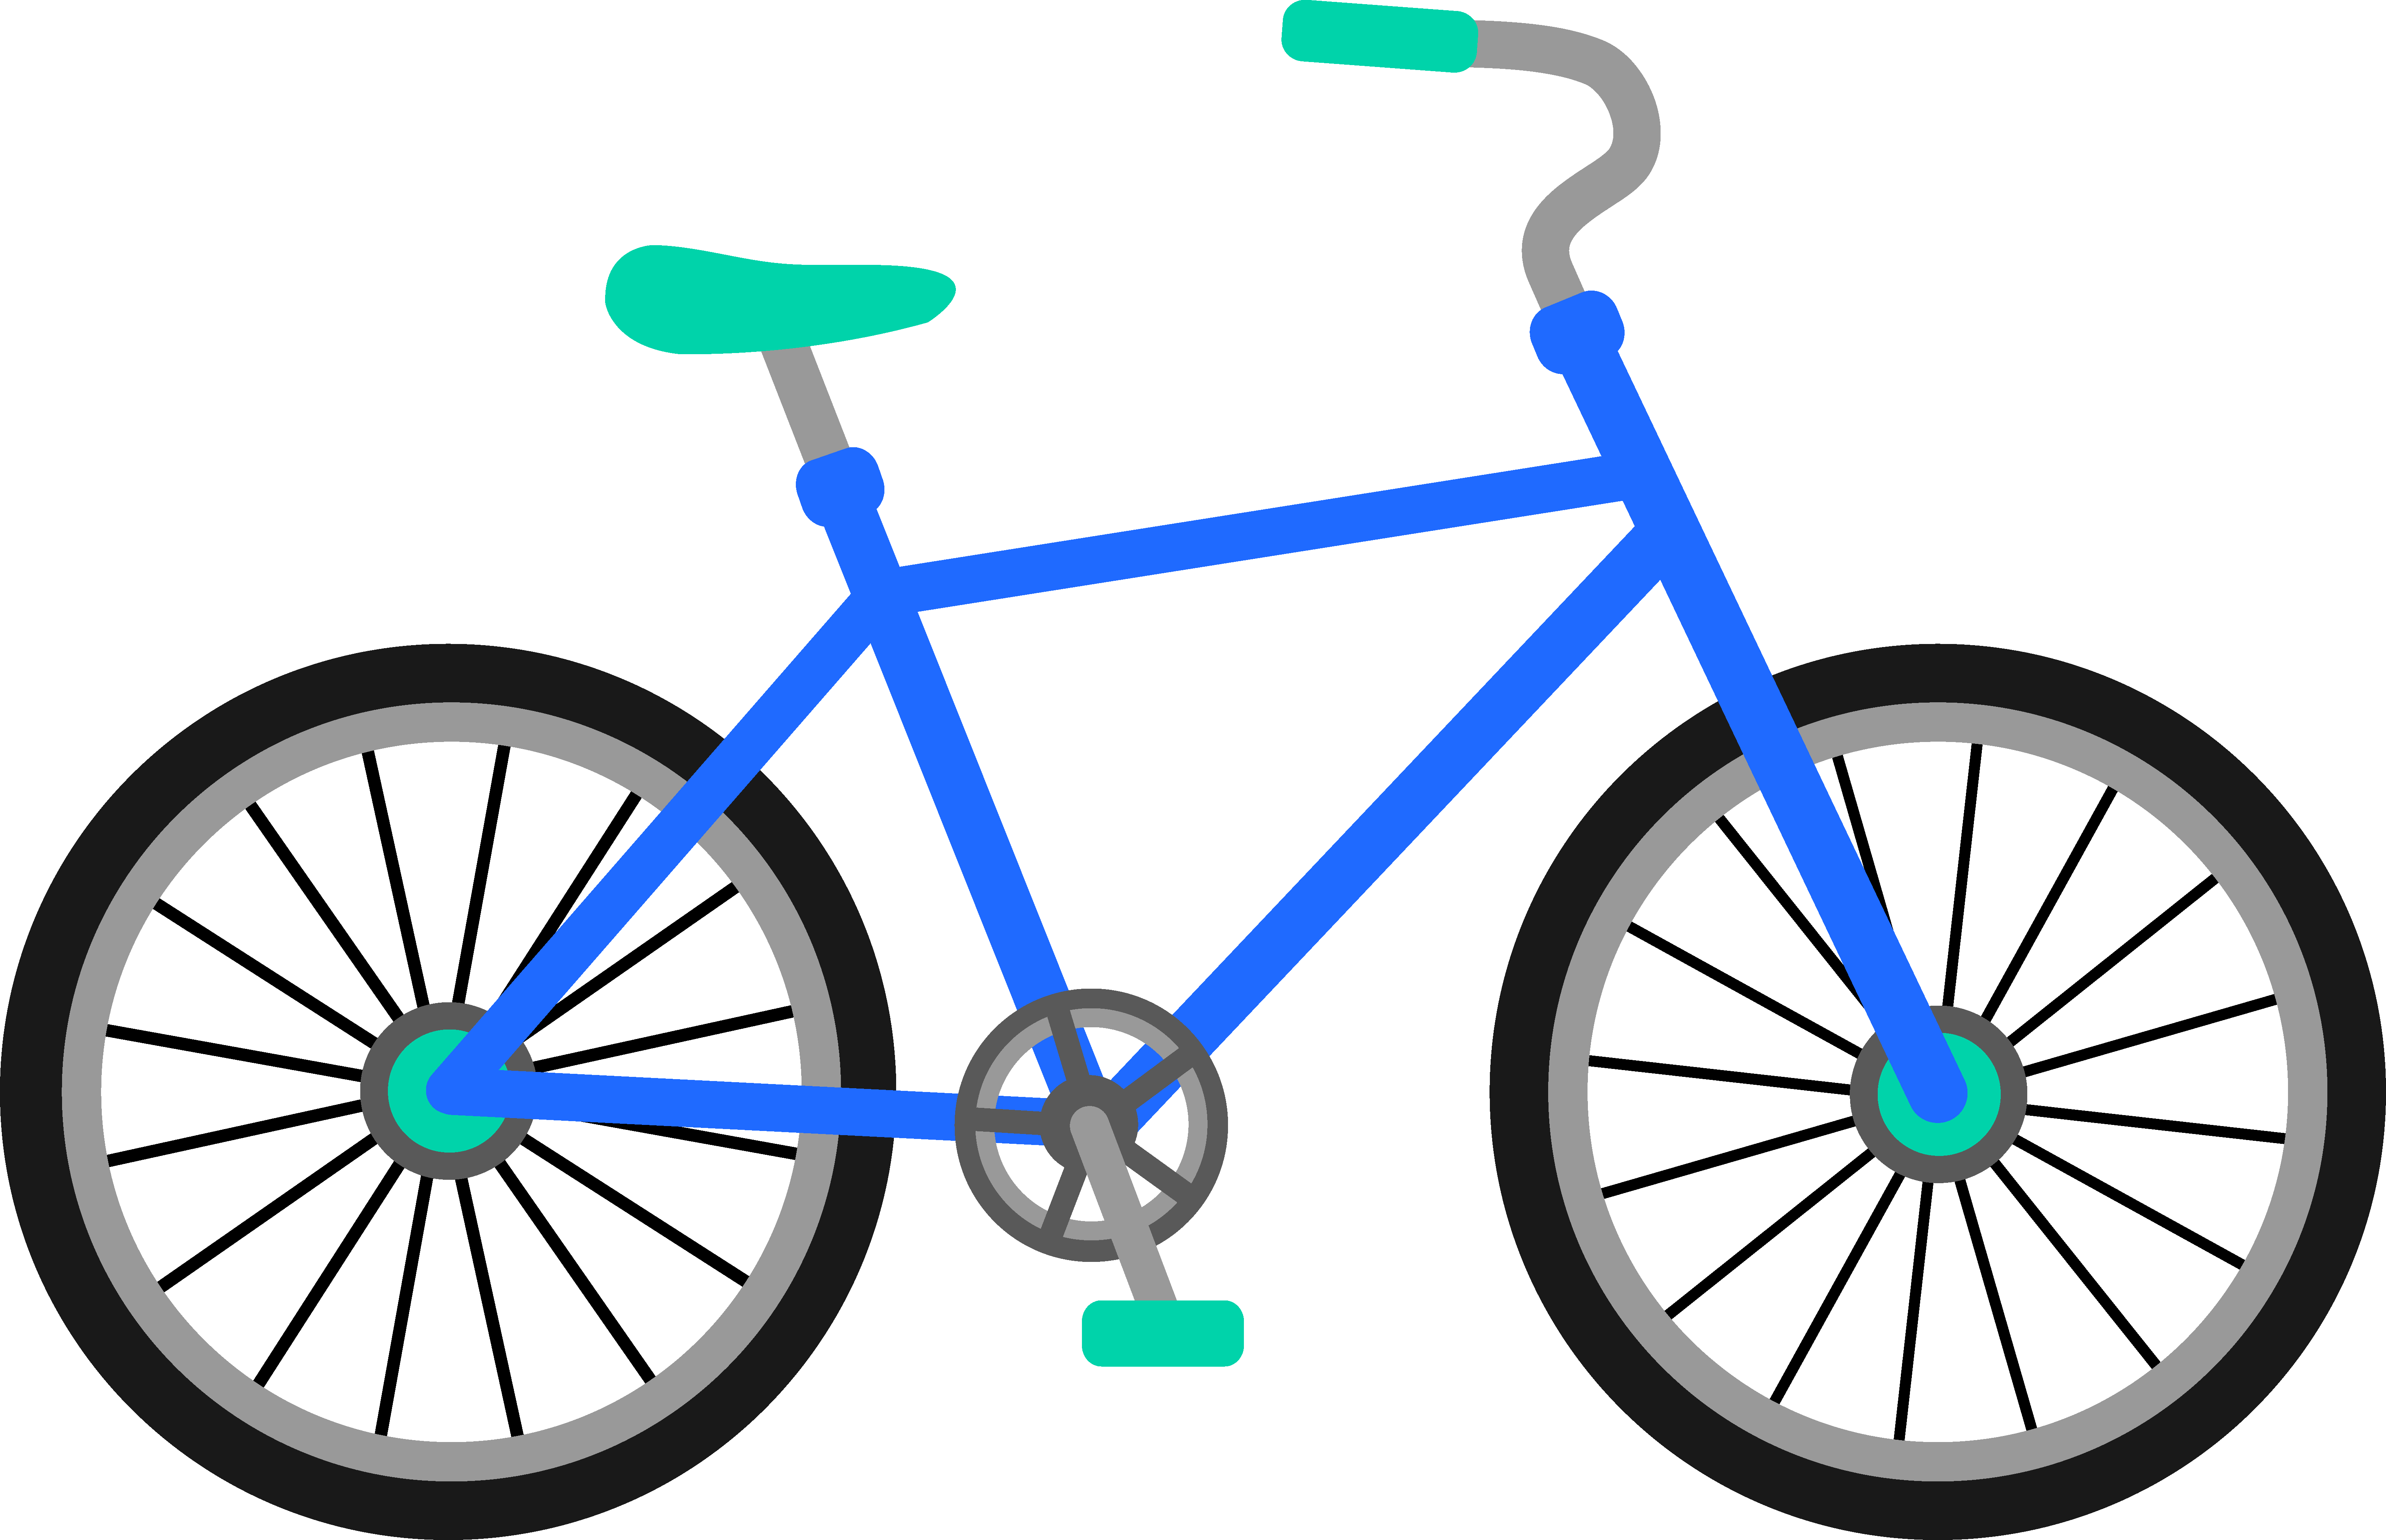 Drawn pushbike animated Turns like it of a